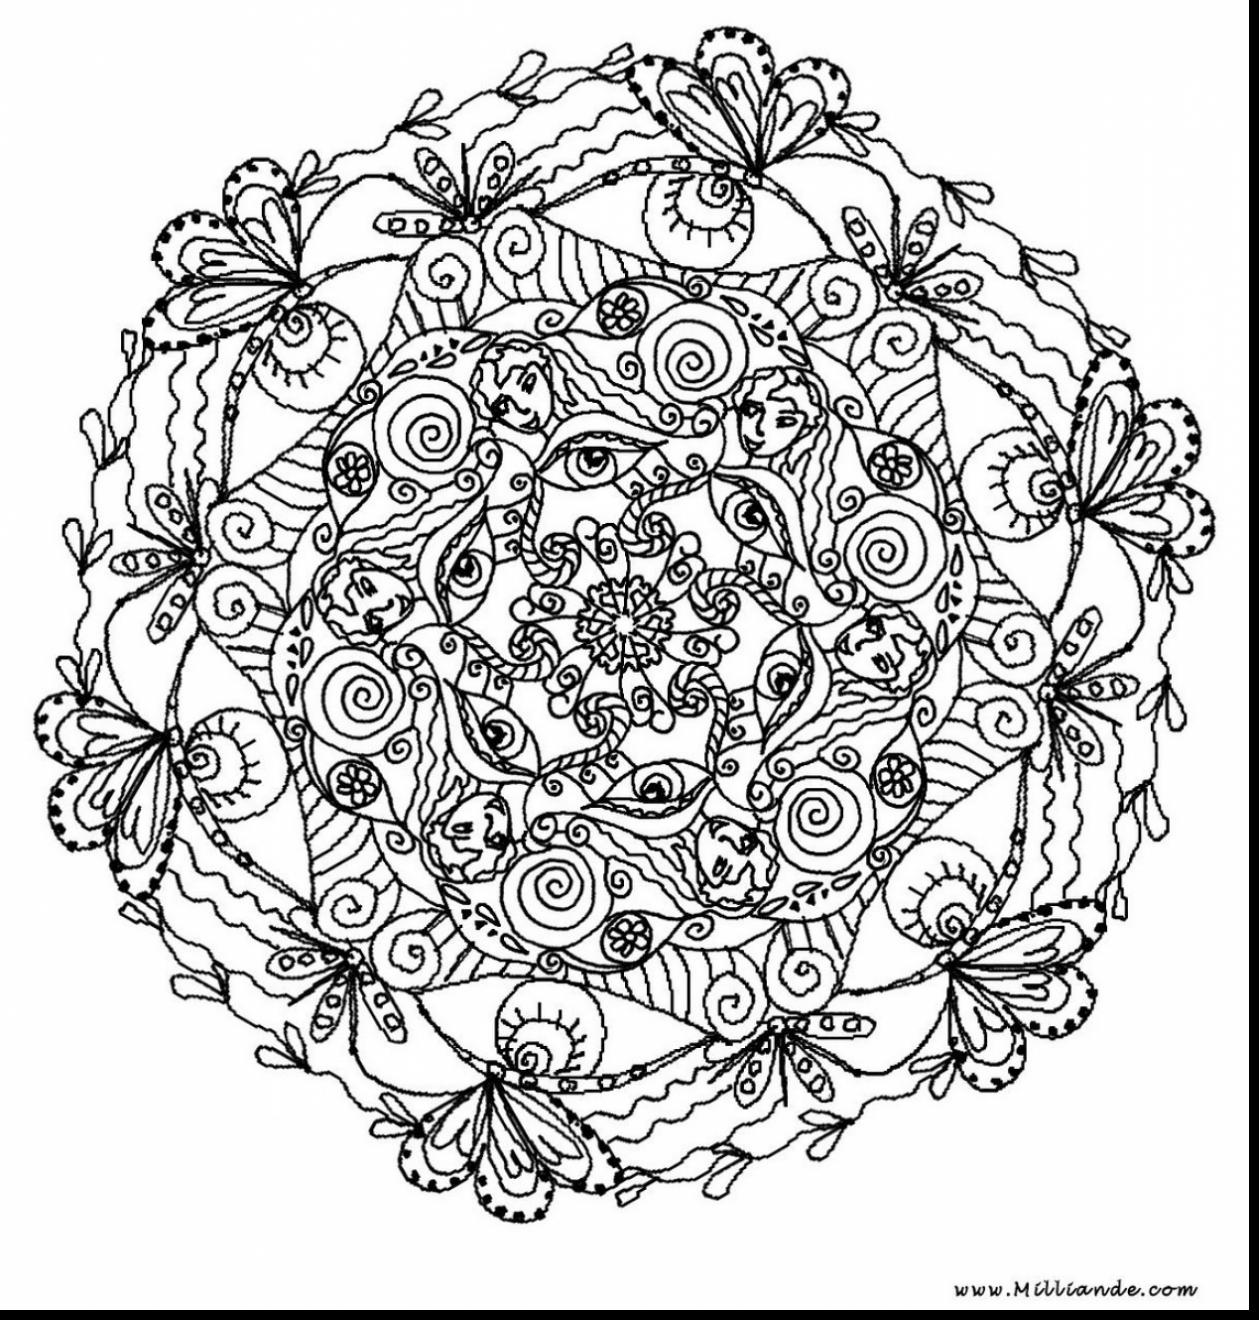 Printable Zen Coloring Pages At Getdrawings Com Free For Personal